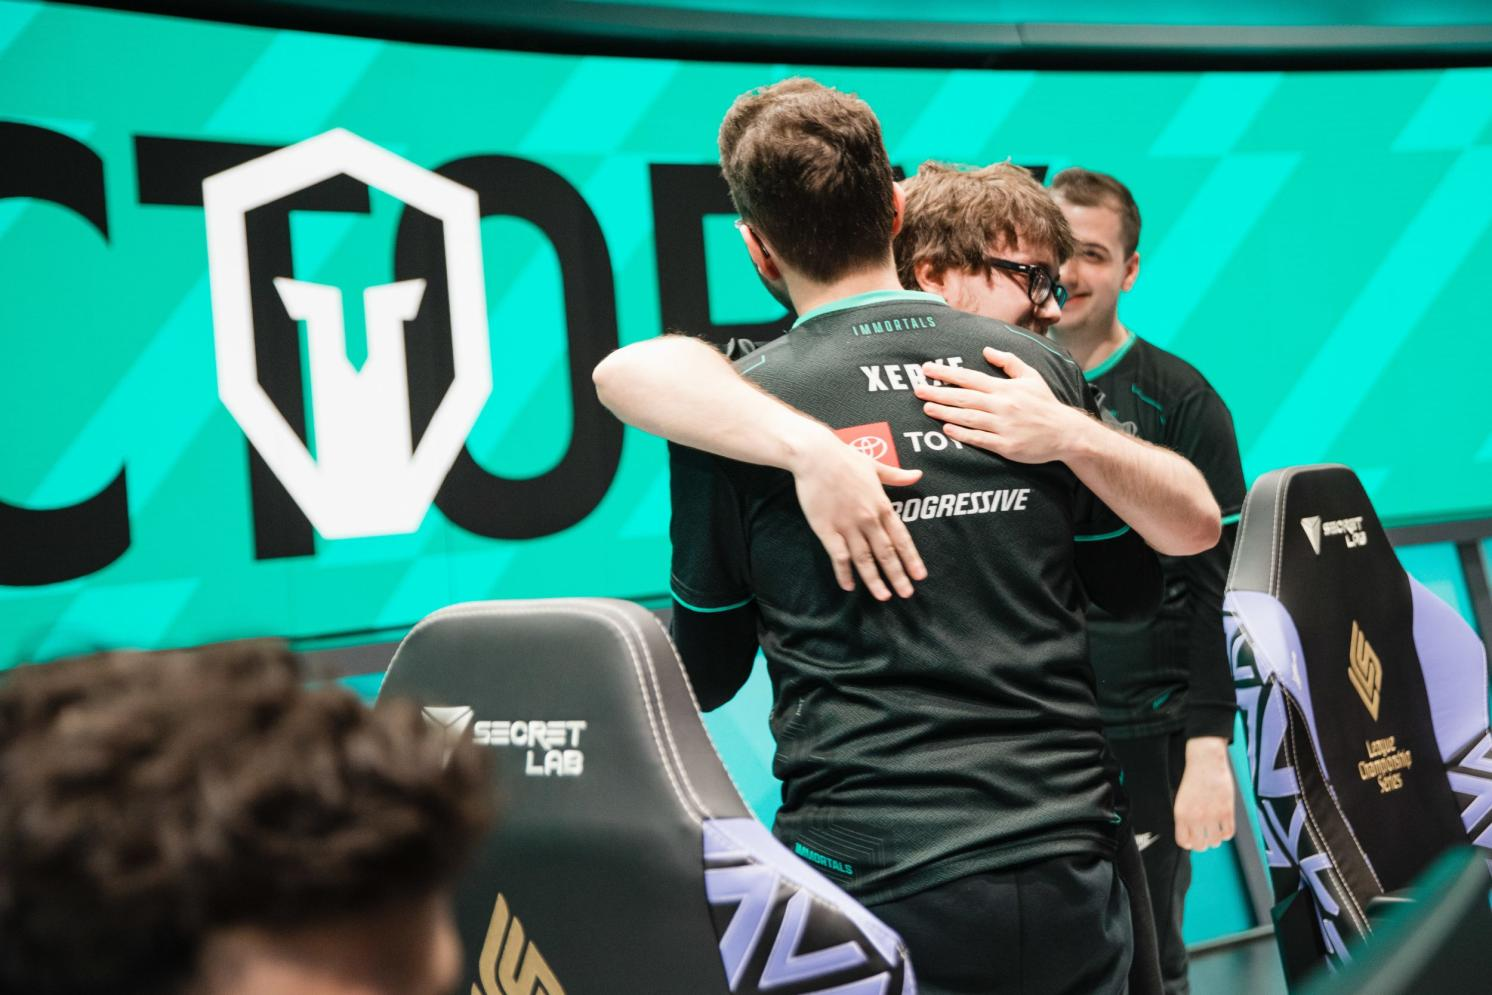 'We're a brotherhood': How Immortals is bonding through its brand thumbnail